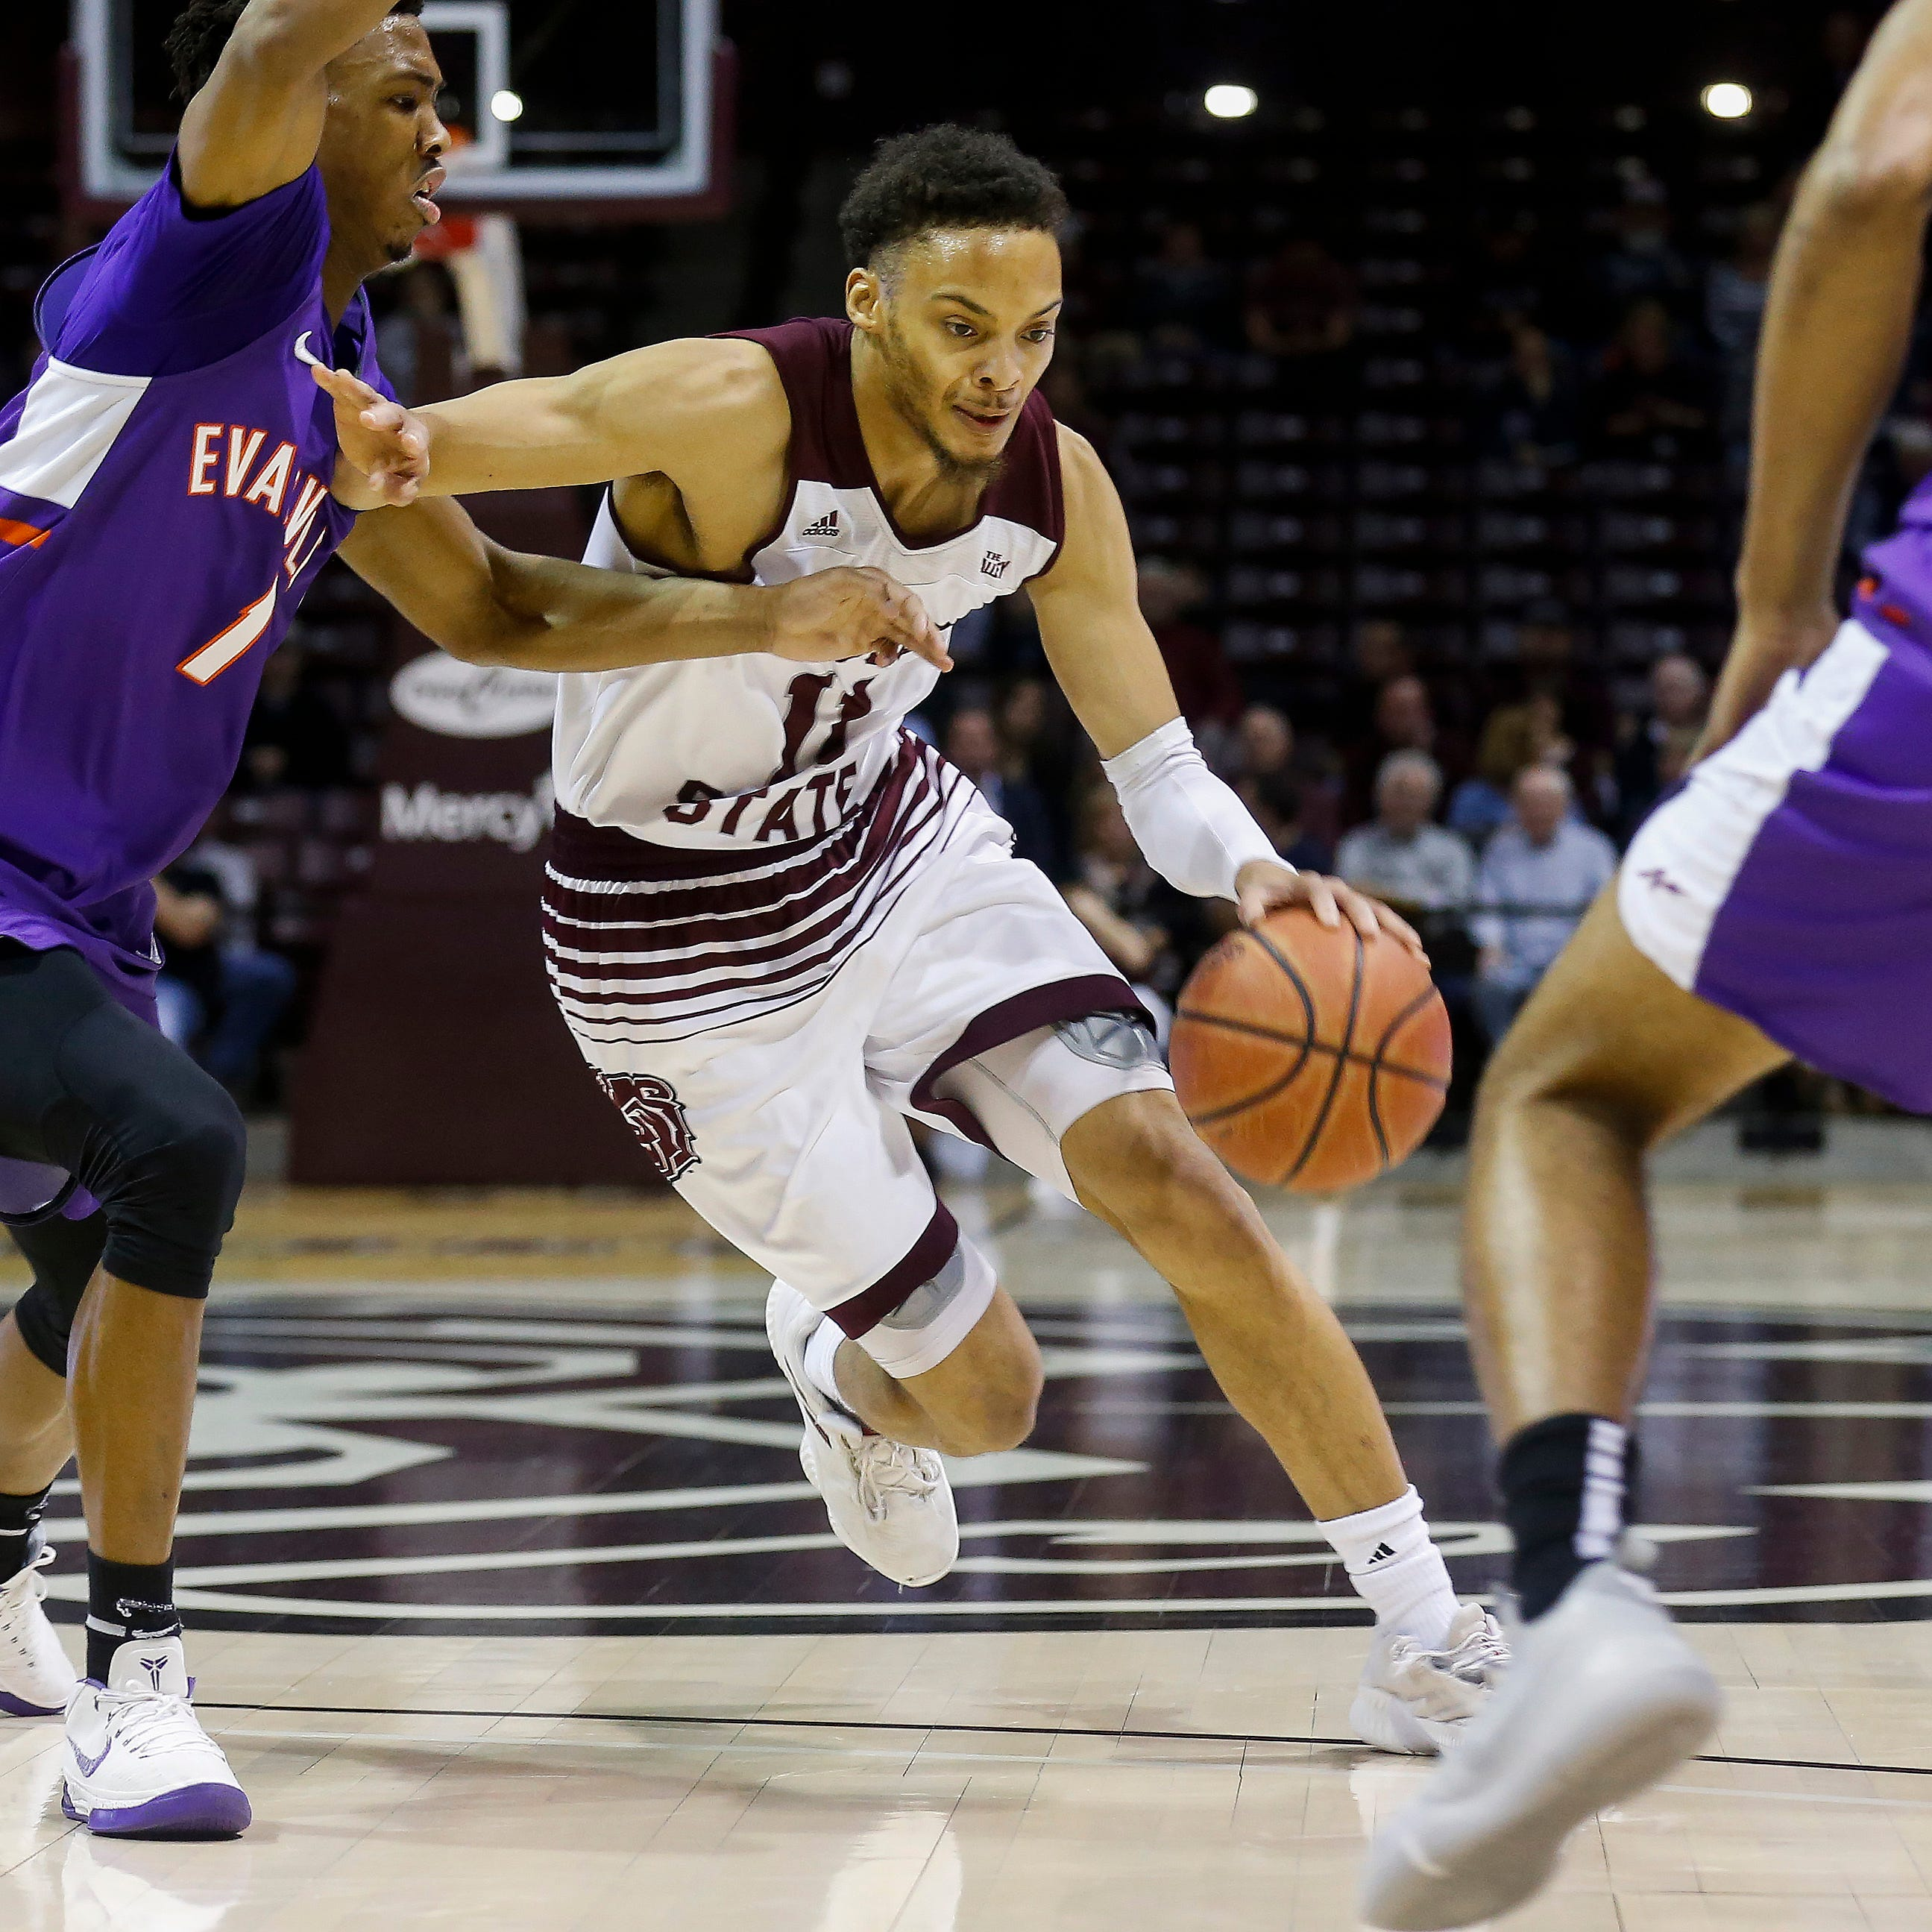 Evansville holds on late in wild victory over Missouri State